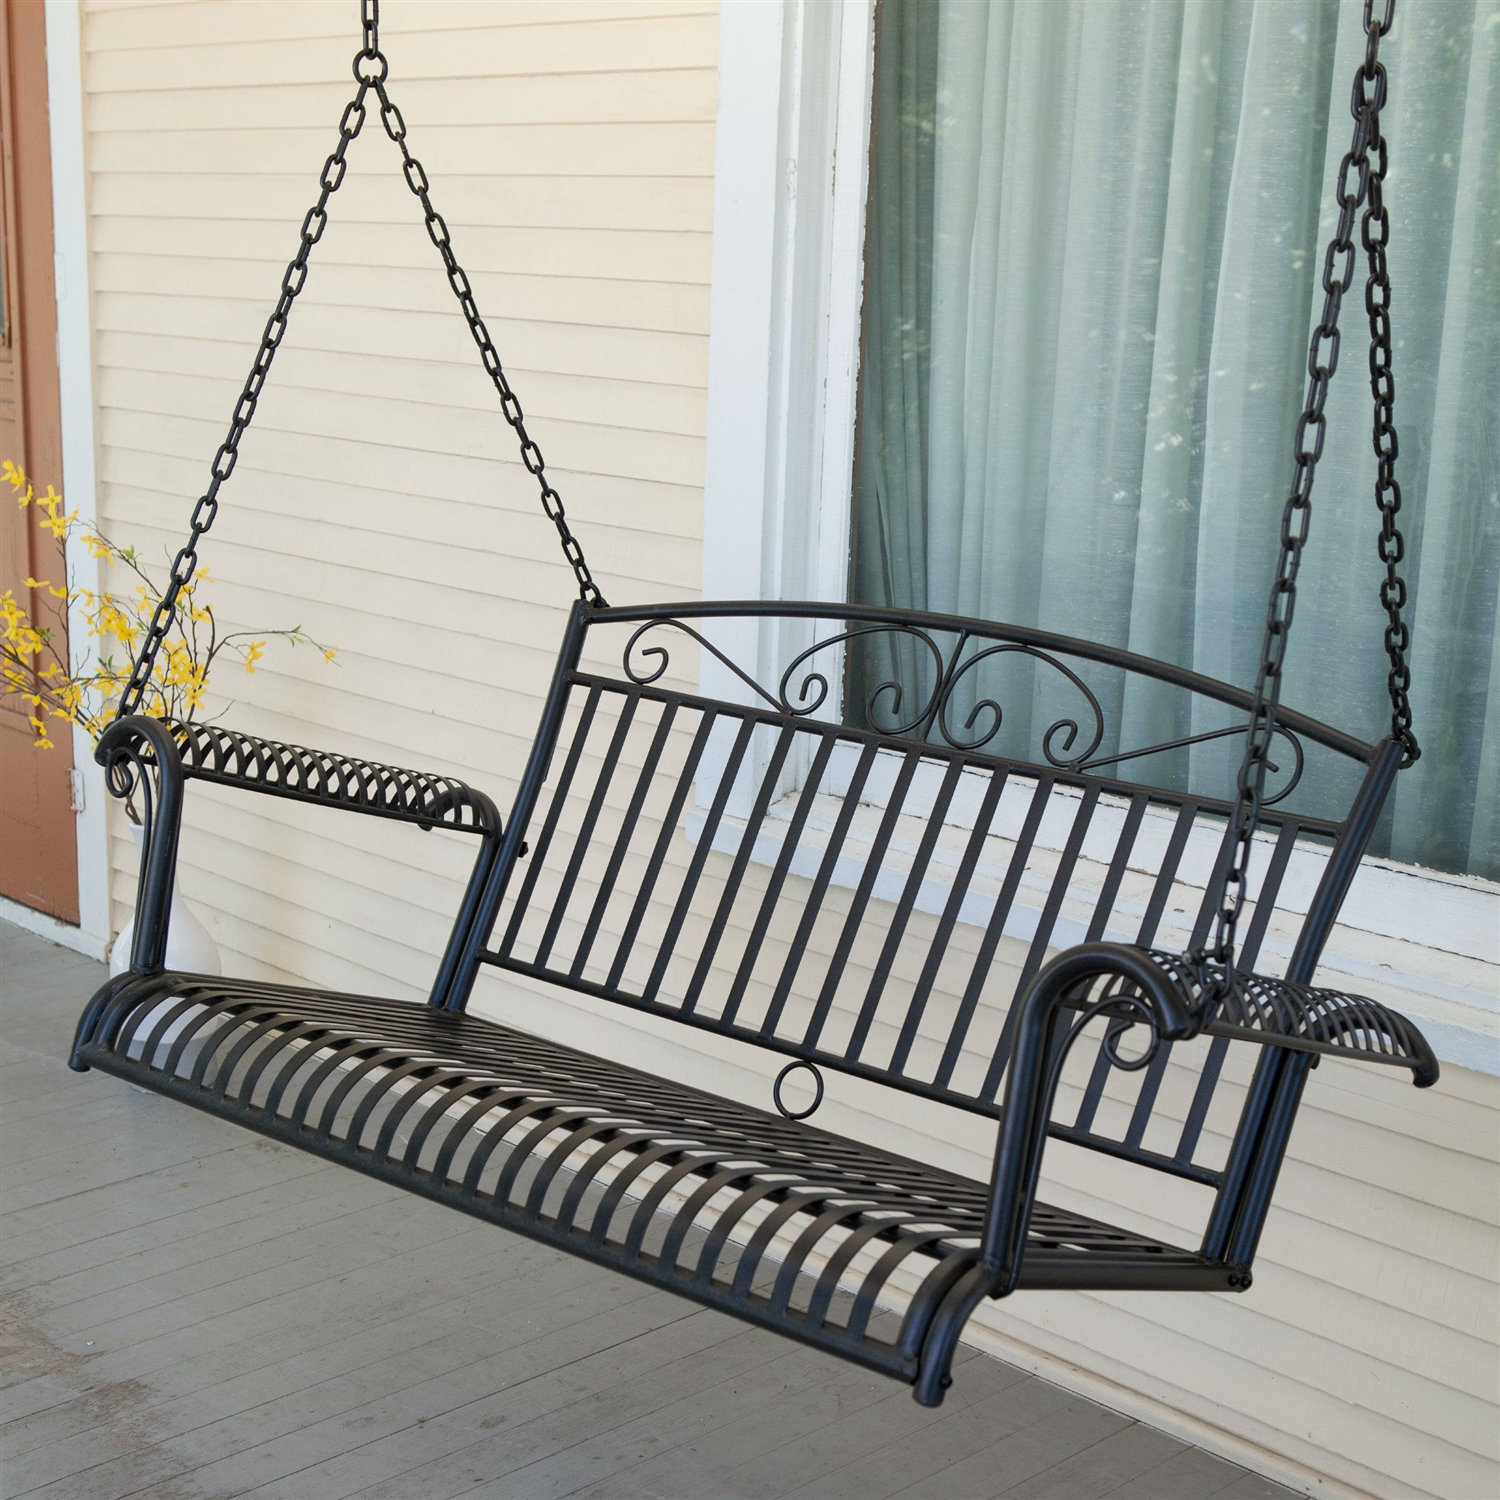 Exceptionnel Wrought Iron Outdoor Patio 4 Ft Porch Swing In Black